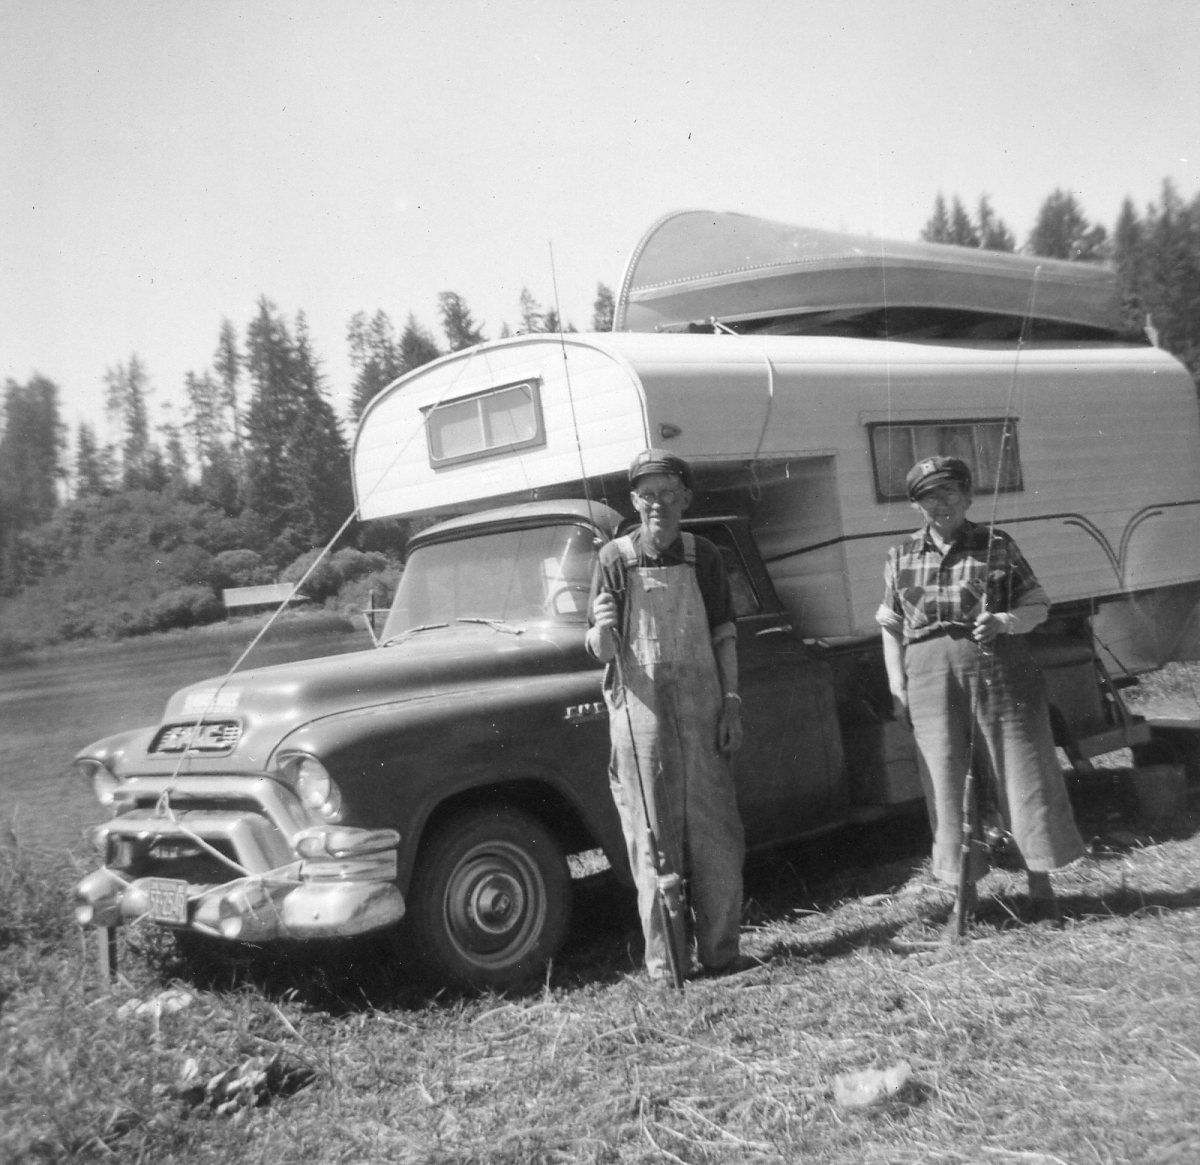 Pin By Jason Edwards On Campers Vintage Chevy Trucks Motorcycle Camping Motorcycle Camping Gear